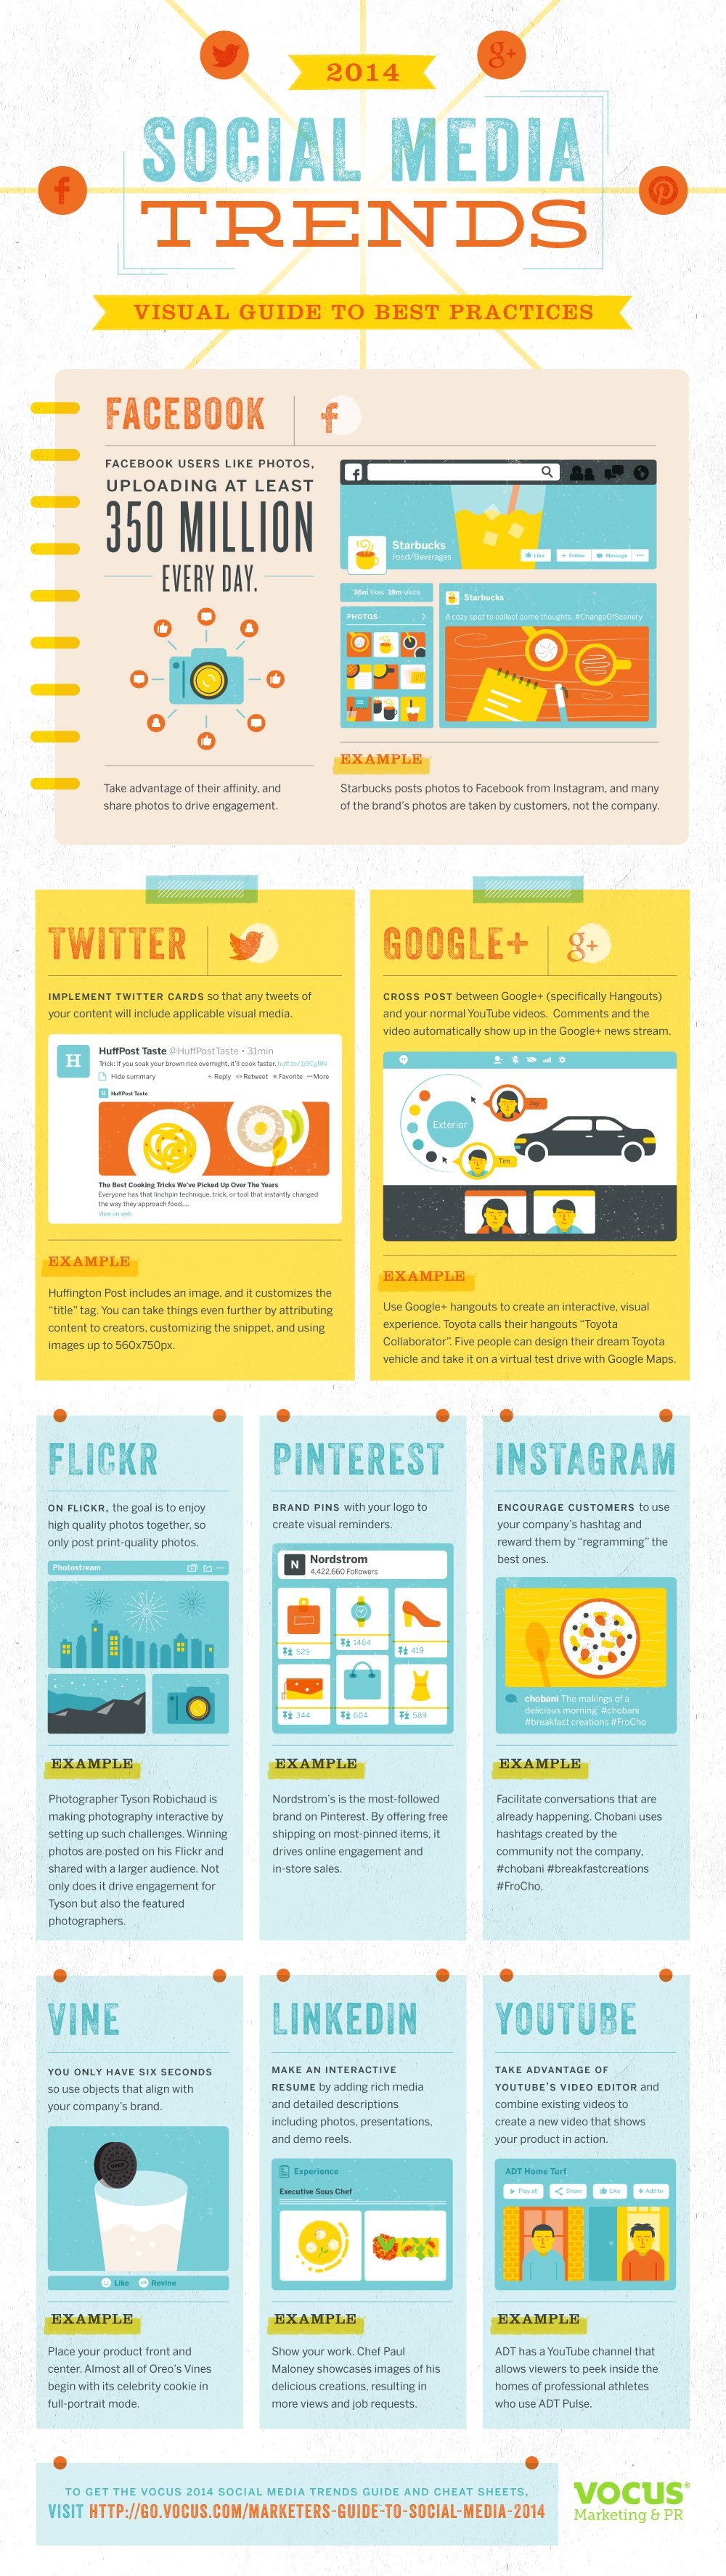 2014 Social Media Best Practices Visual Guide